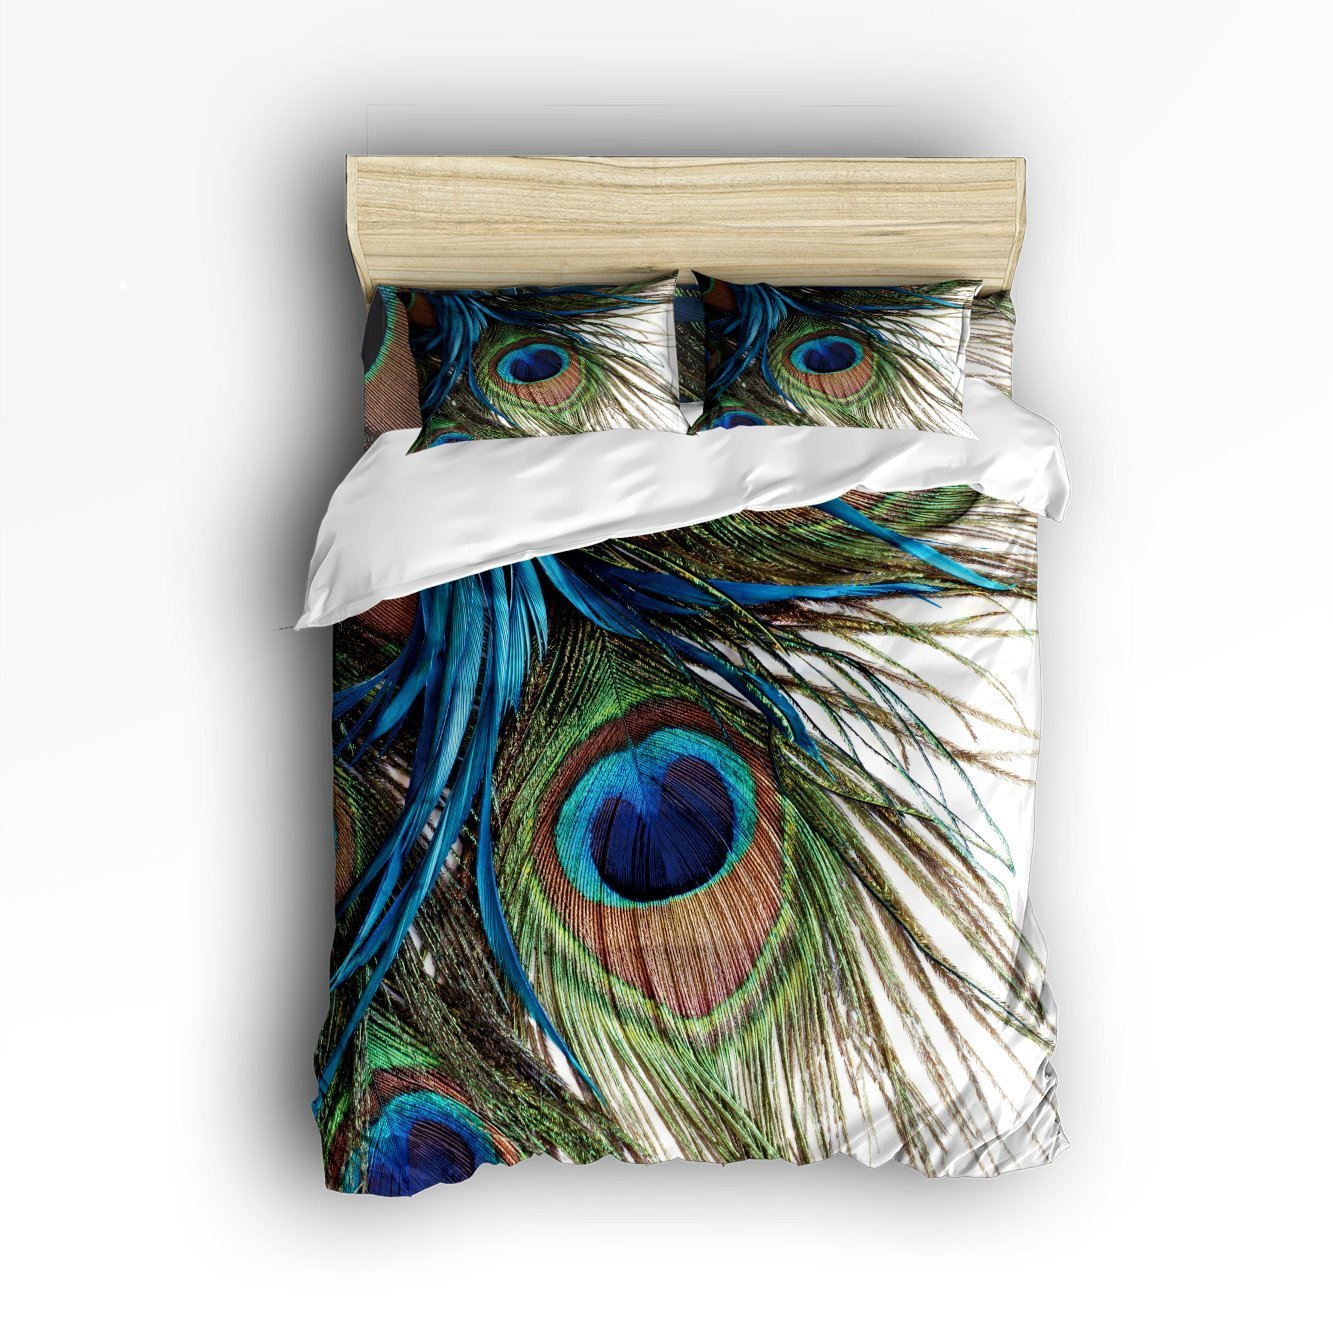 CHARMHOME Peacock Feather Eye Print Home Comforter Bedding Sets Duvet Cover Sets Bedspread for Adult Kids,Flat Sheet, Shams Set 4Pieces,4 Pcs Queen Size for Kids Teenage Teens - King Size by CHARMHOME